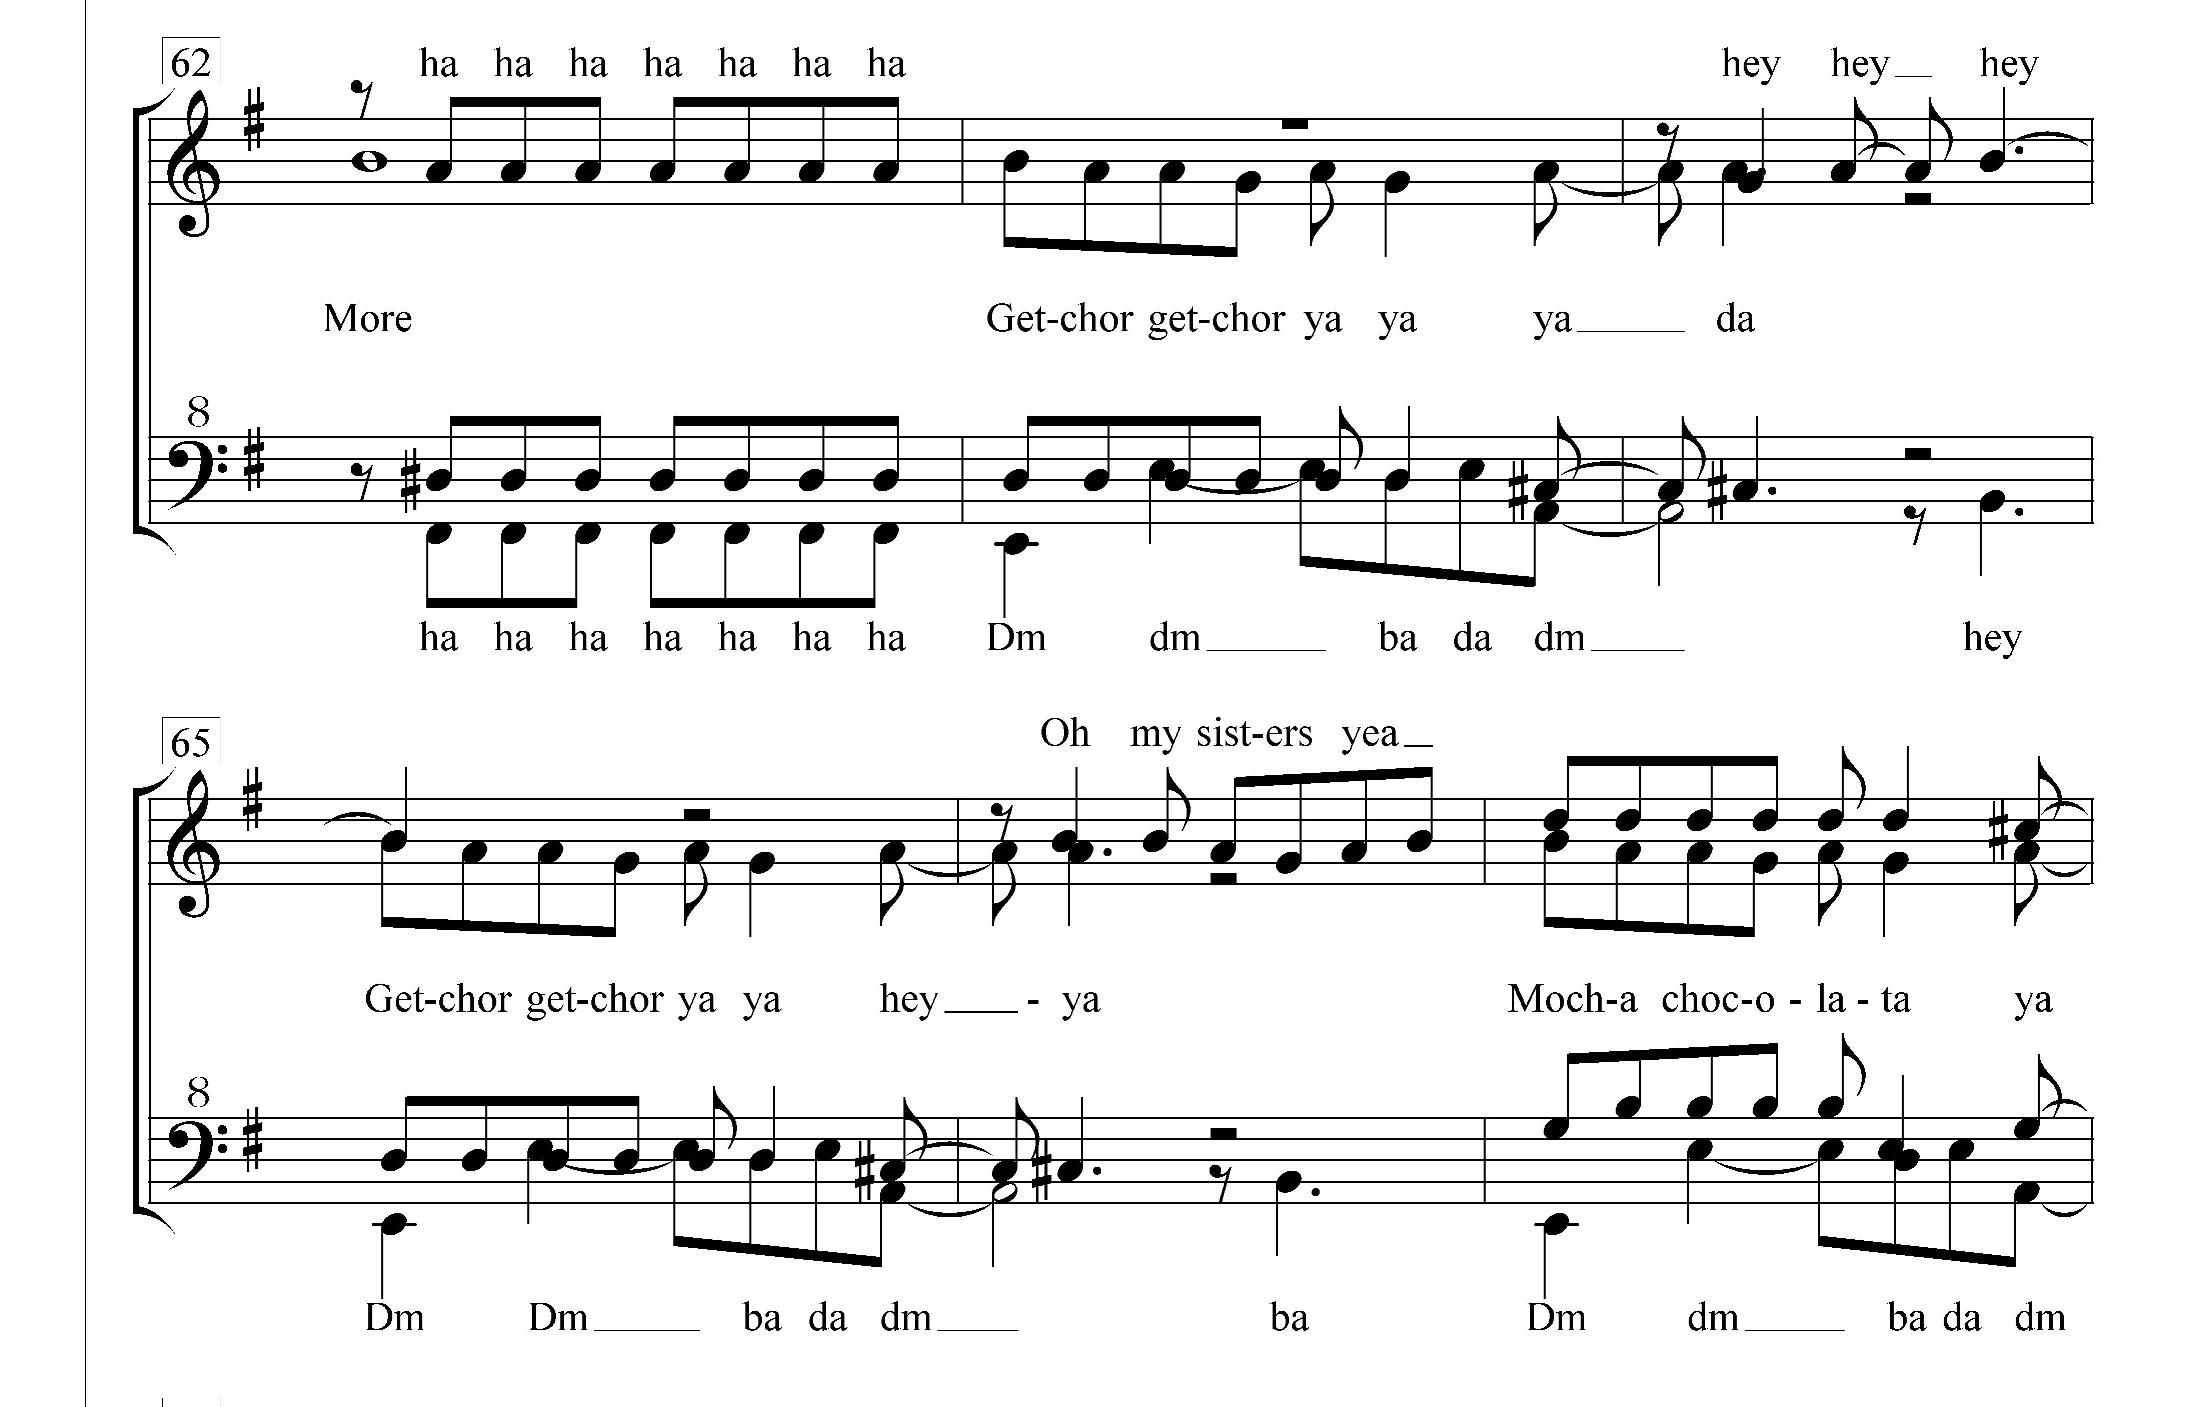 Arranging non-barbershop music for barbershoppers